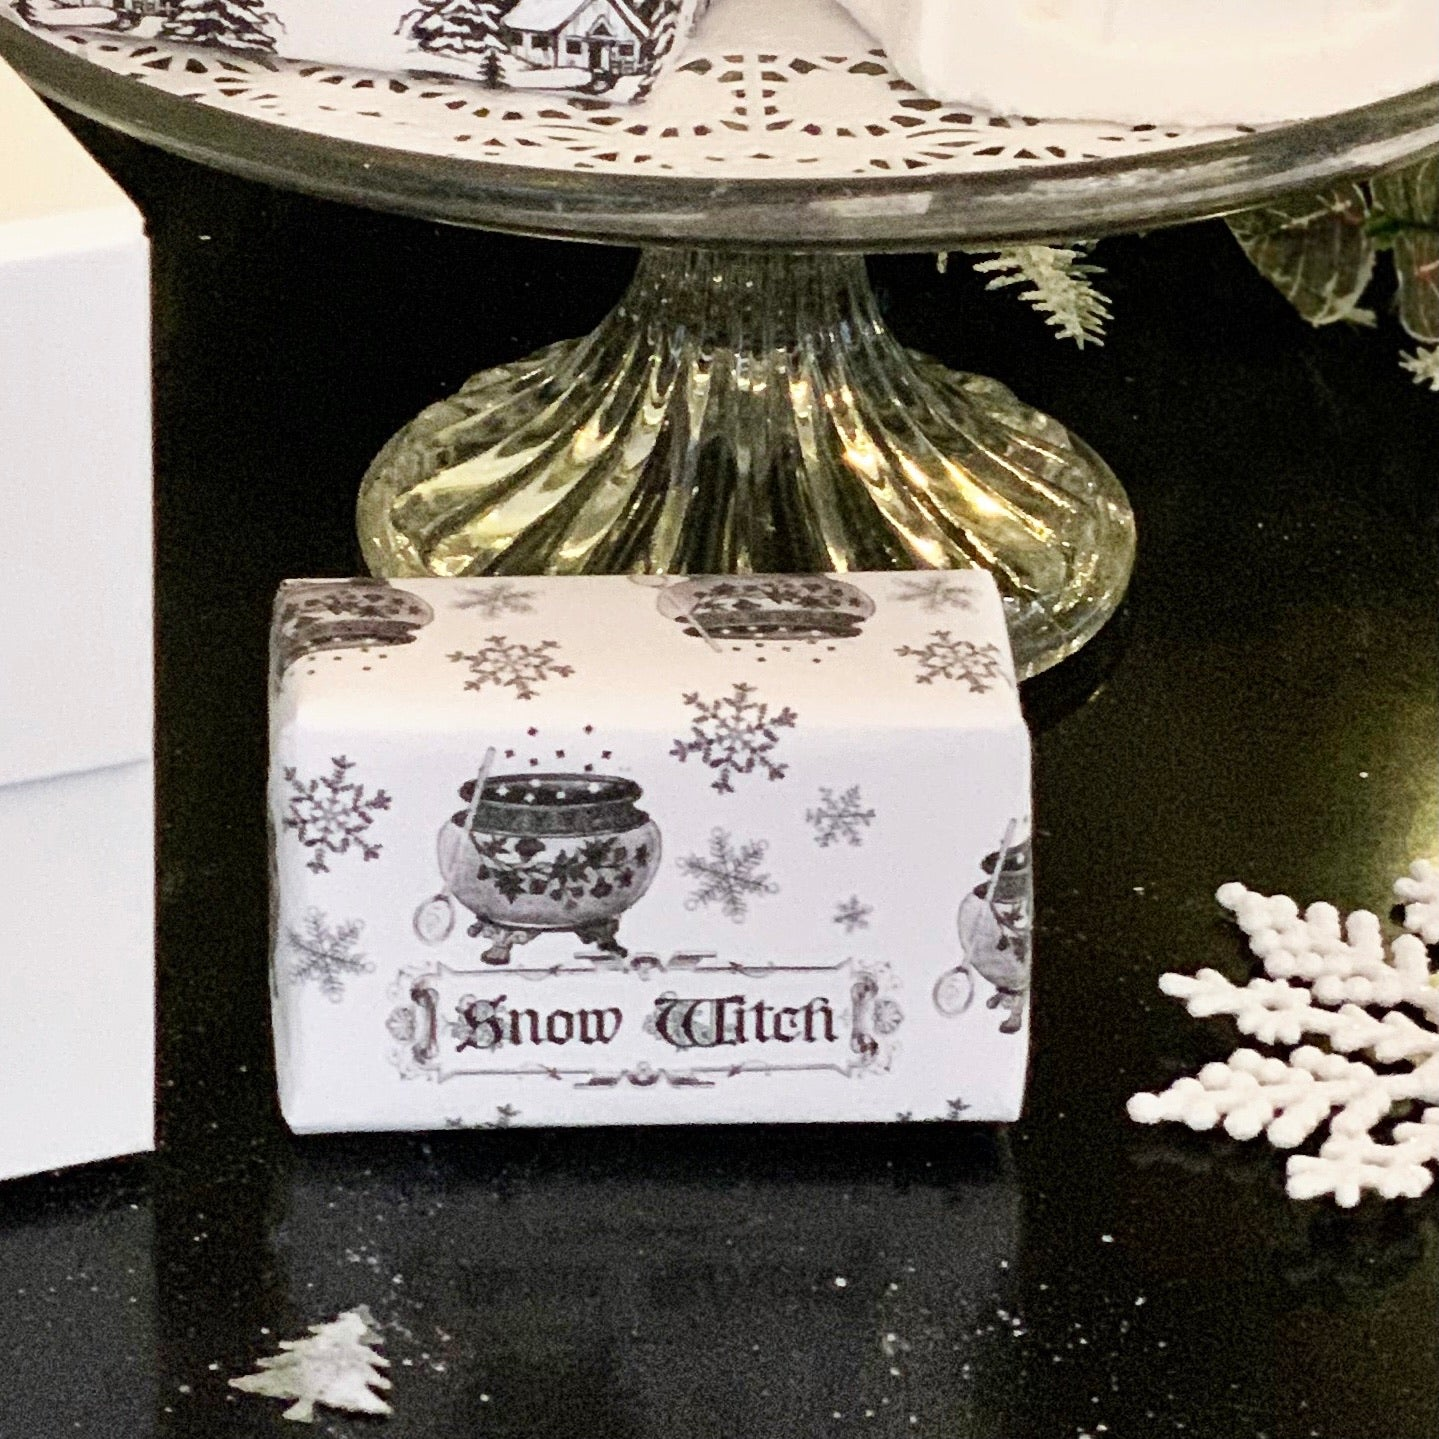 The Snow Witch Soap